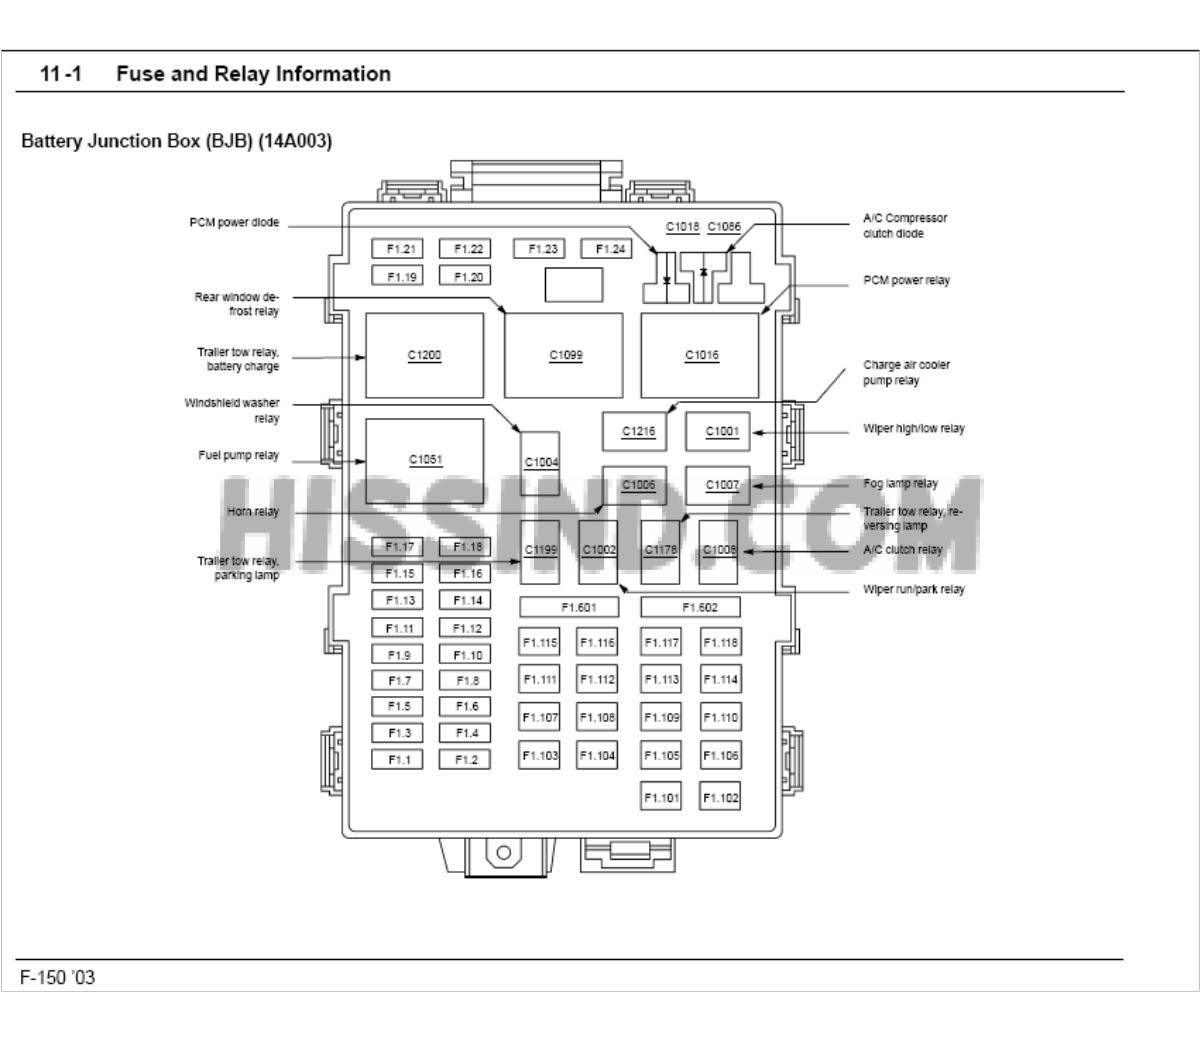 hight resolution of 06 ford e 150 fuse box diagram under dash